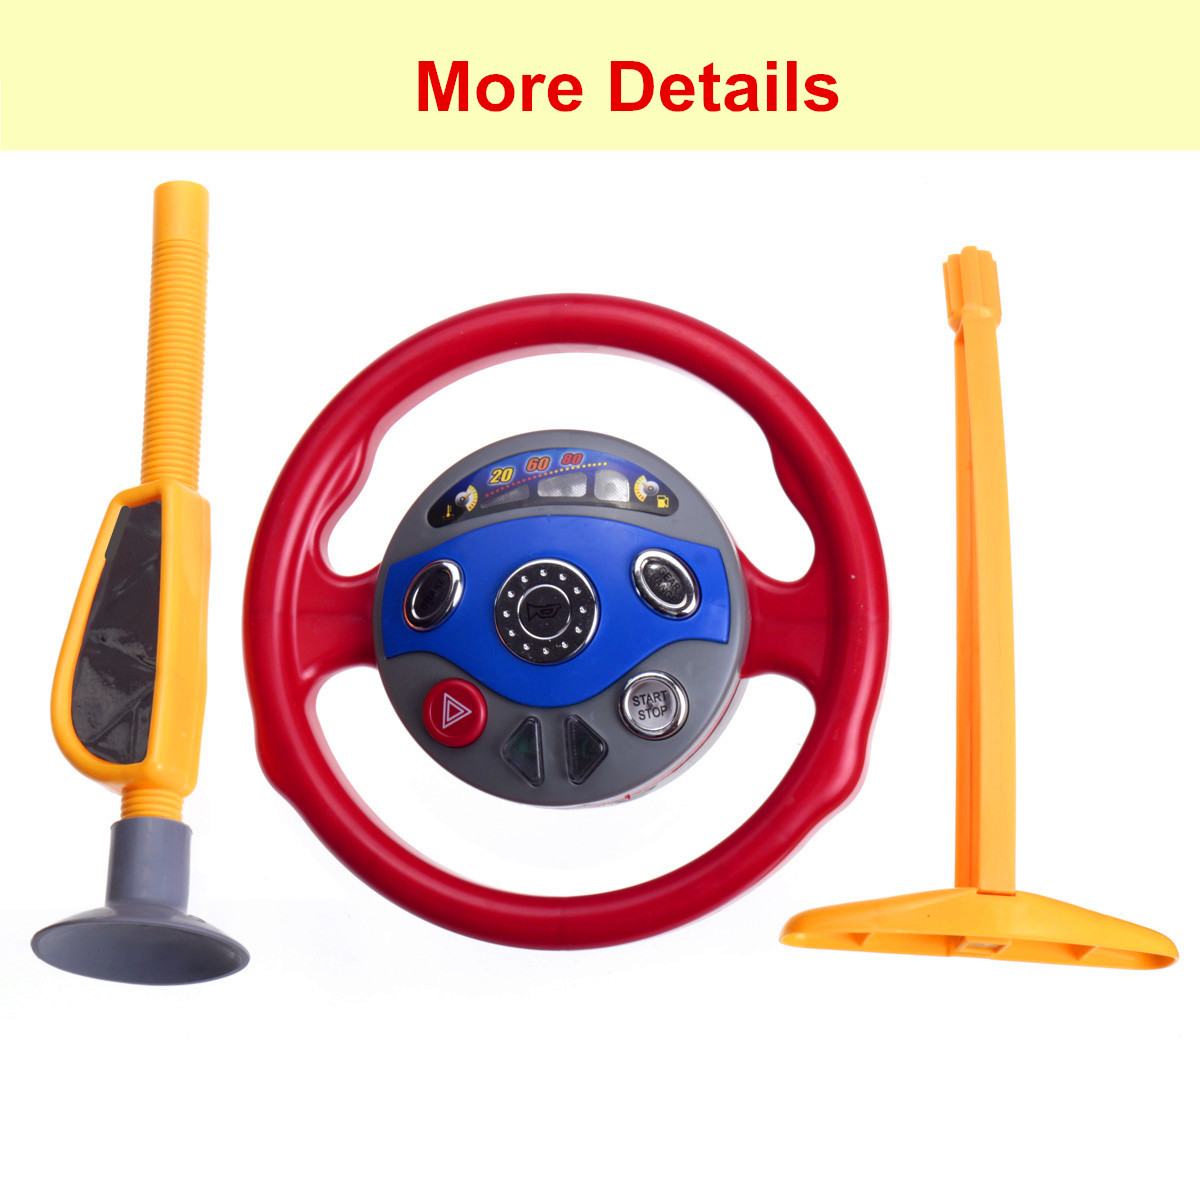 les enfants si ge conducteur voiture volant jouet backseat driver steering wheel ebay. Black Bedroom Furniture Sets. Home Design Ideas